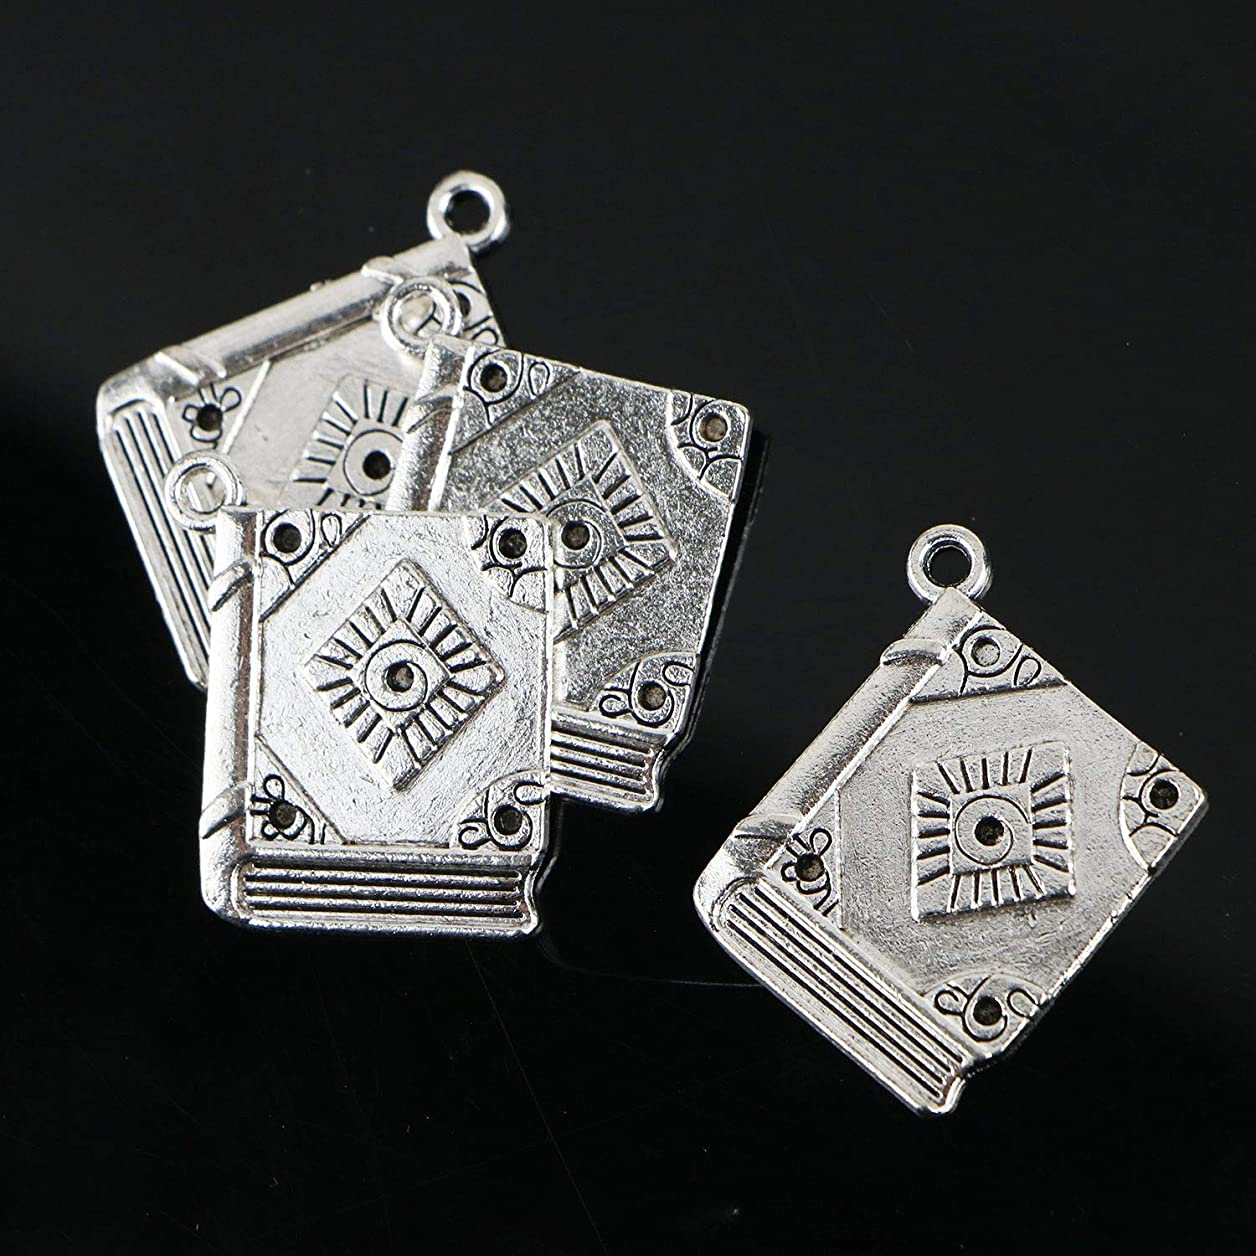 Monrocco 50Pcs Book Charms Jewelry Making Supply Pendant Bracelet DIY Crafting avczumbcfeiwrode